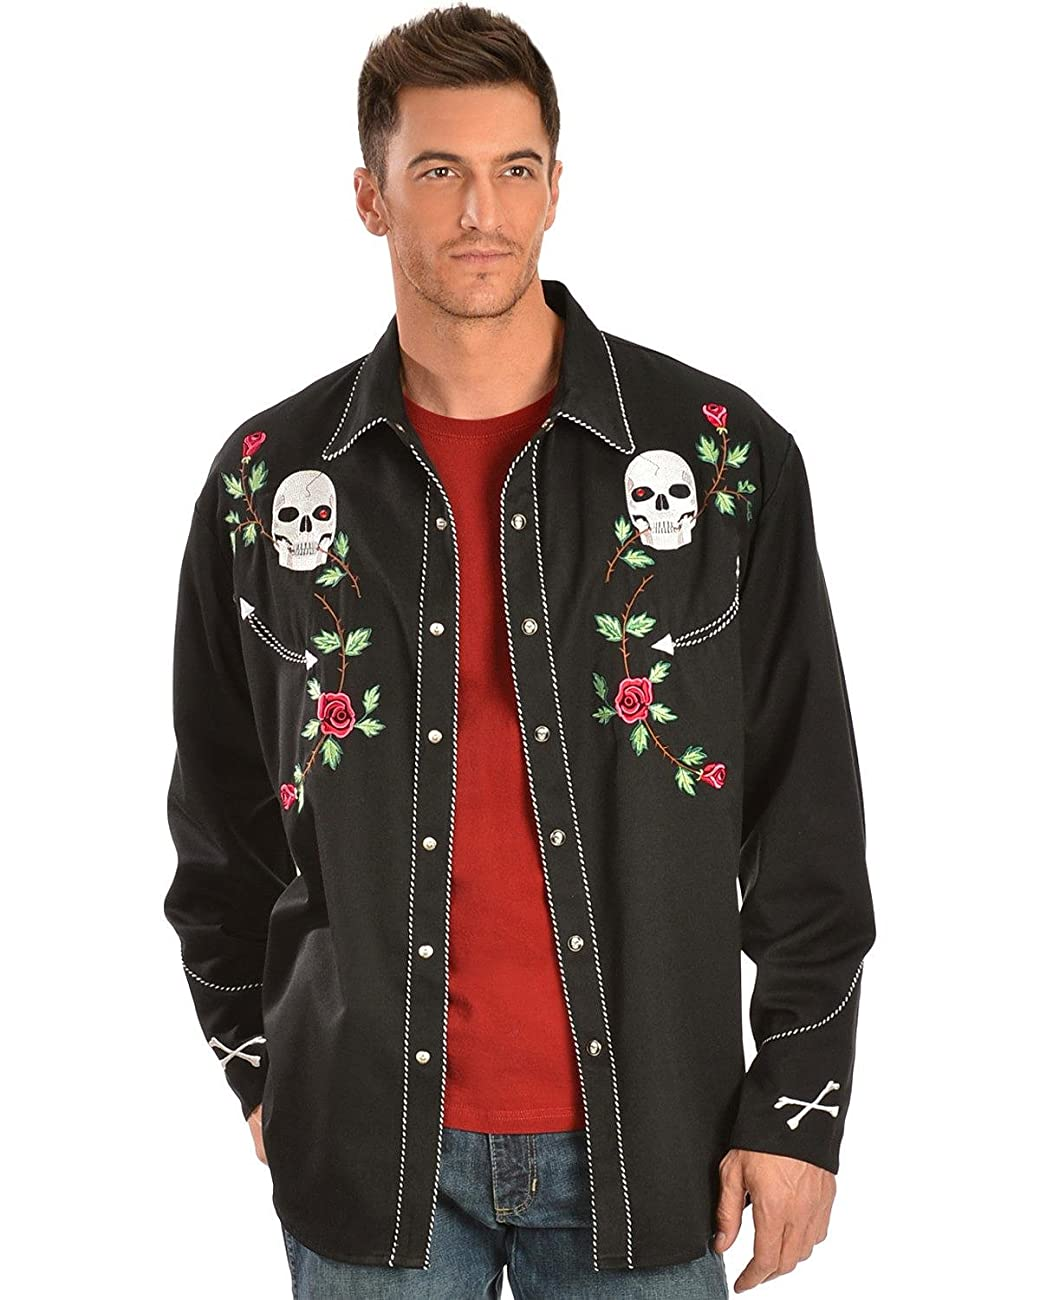 Scully Men's Skull And Roses Embroidered Retro Western Shirt Big - P-771 Blk_X 0